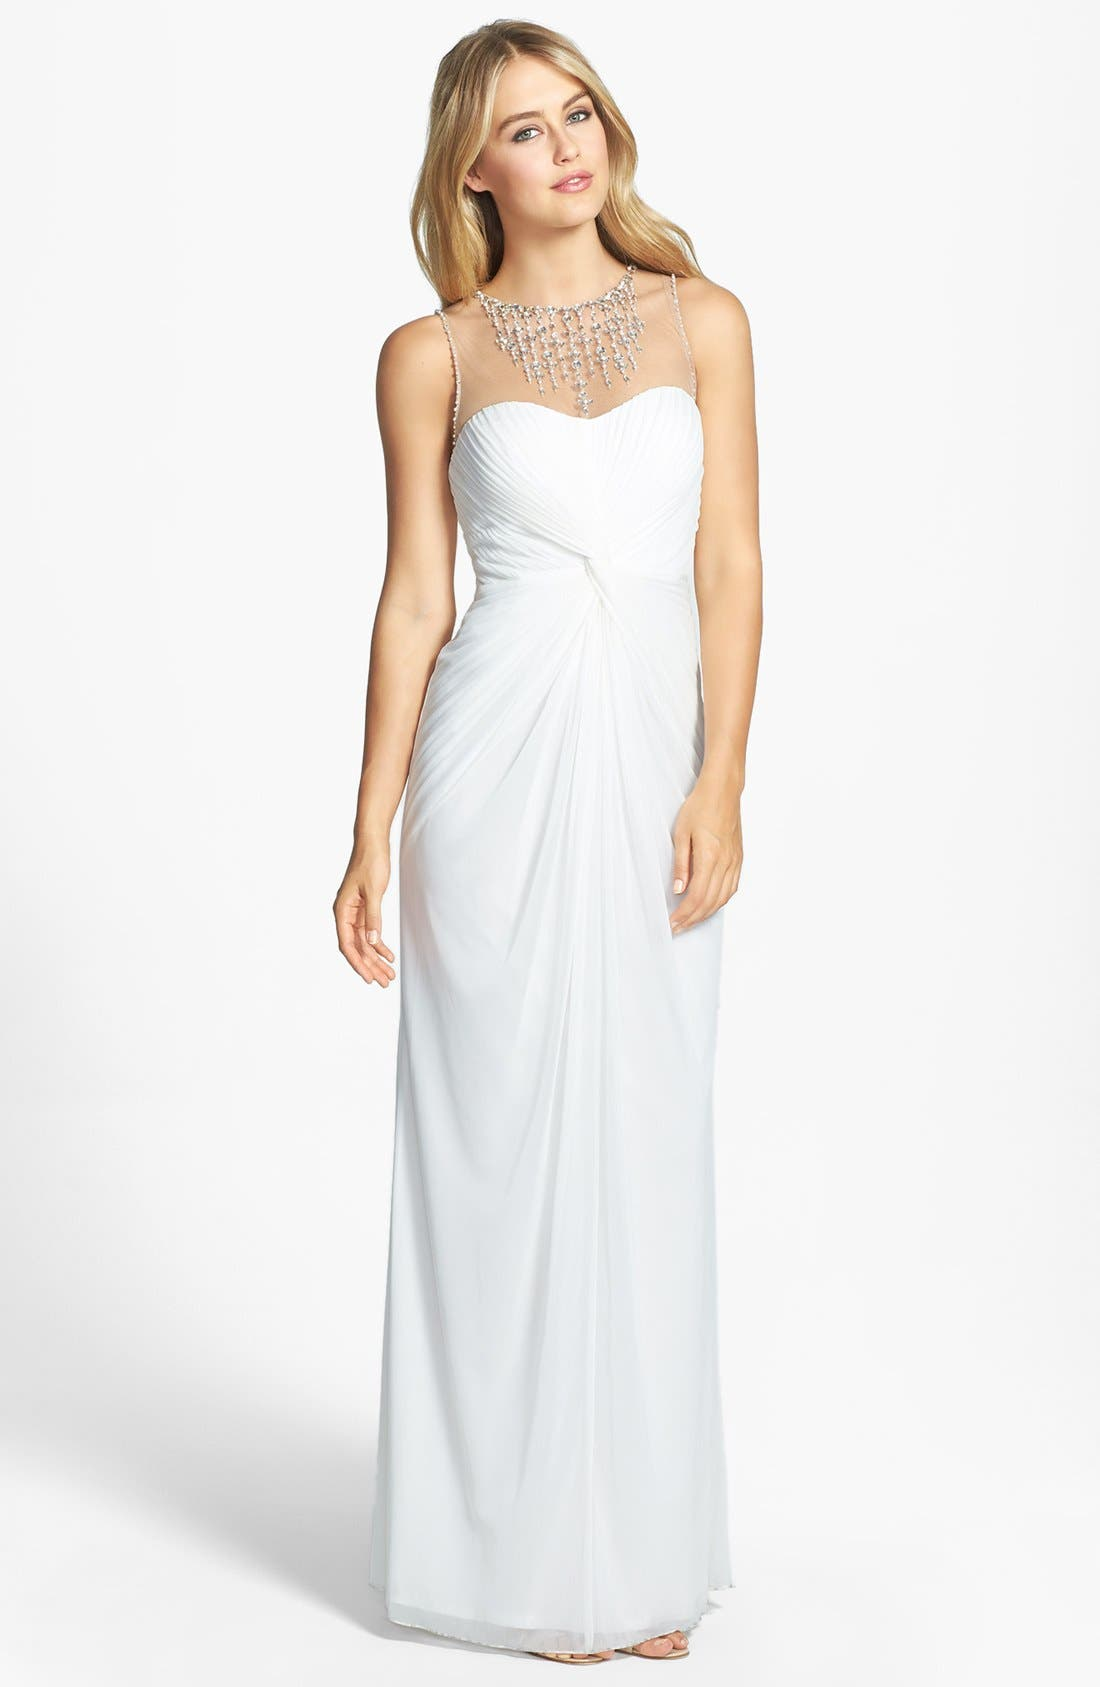 Main Image - Adrianna Papell Embellished Twist Front Mesh Gown